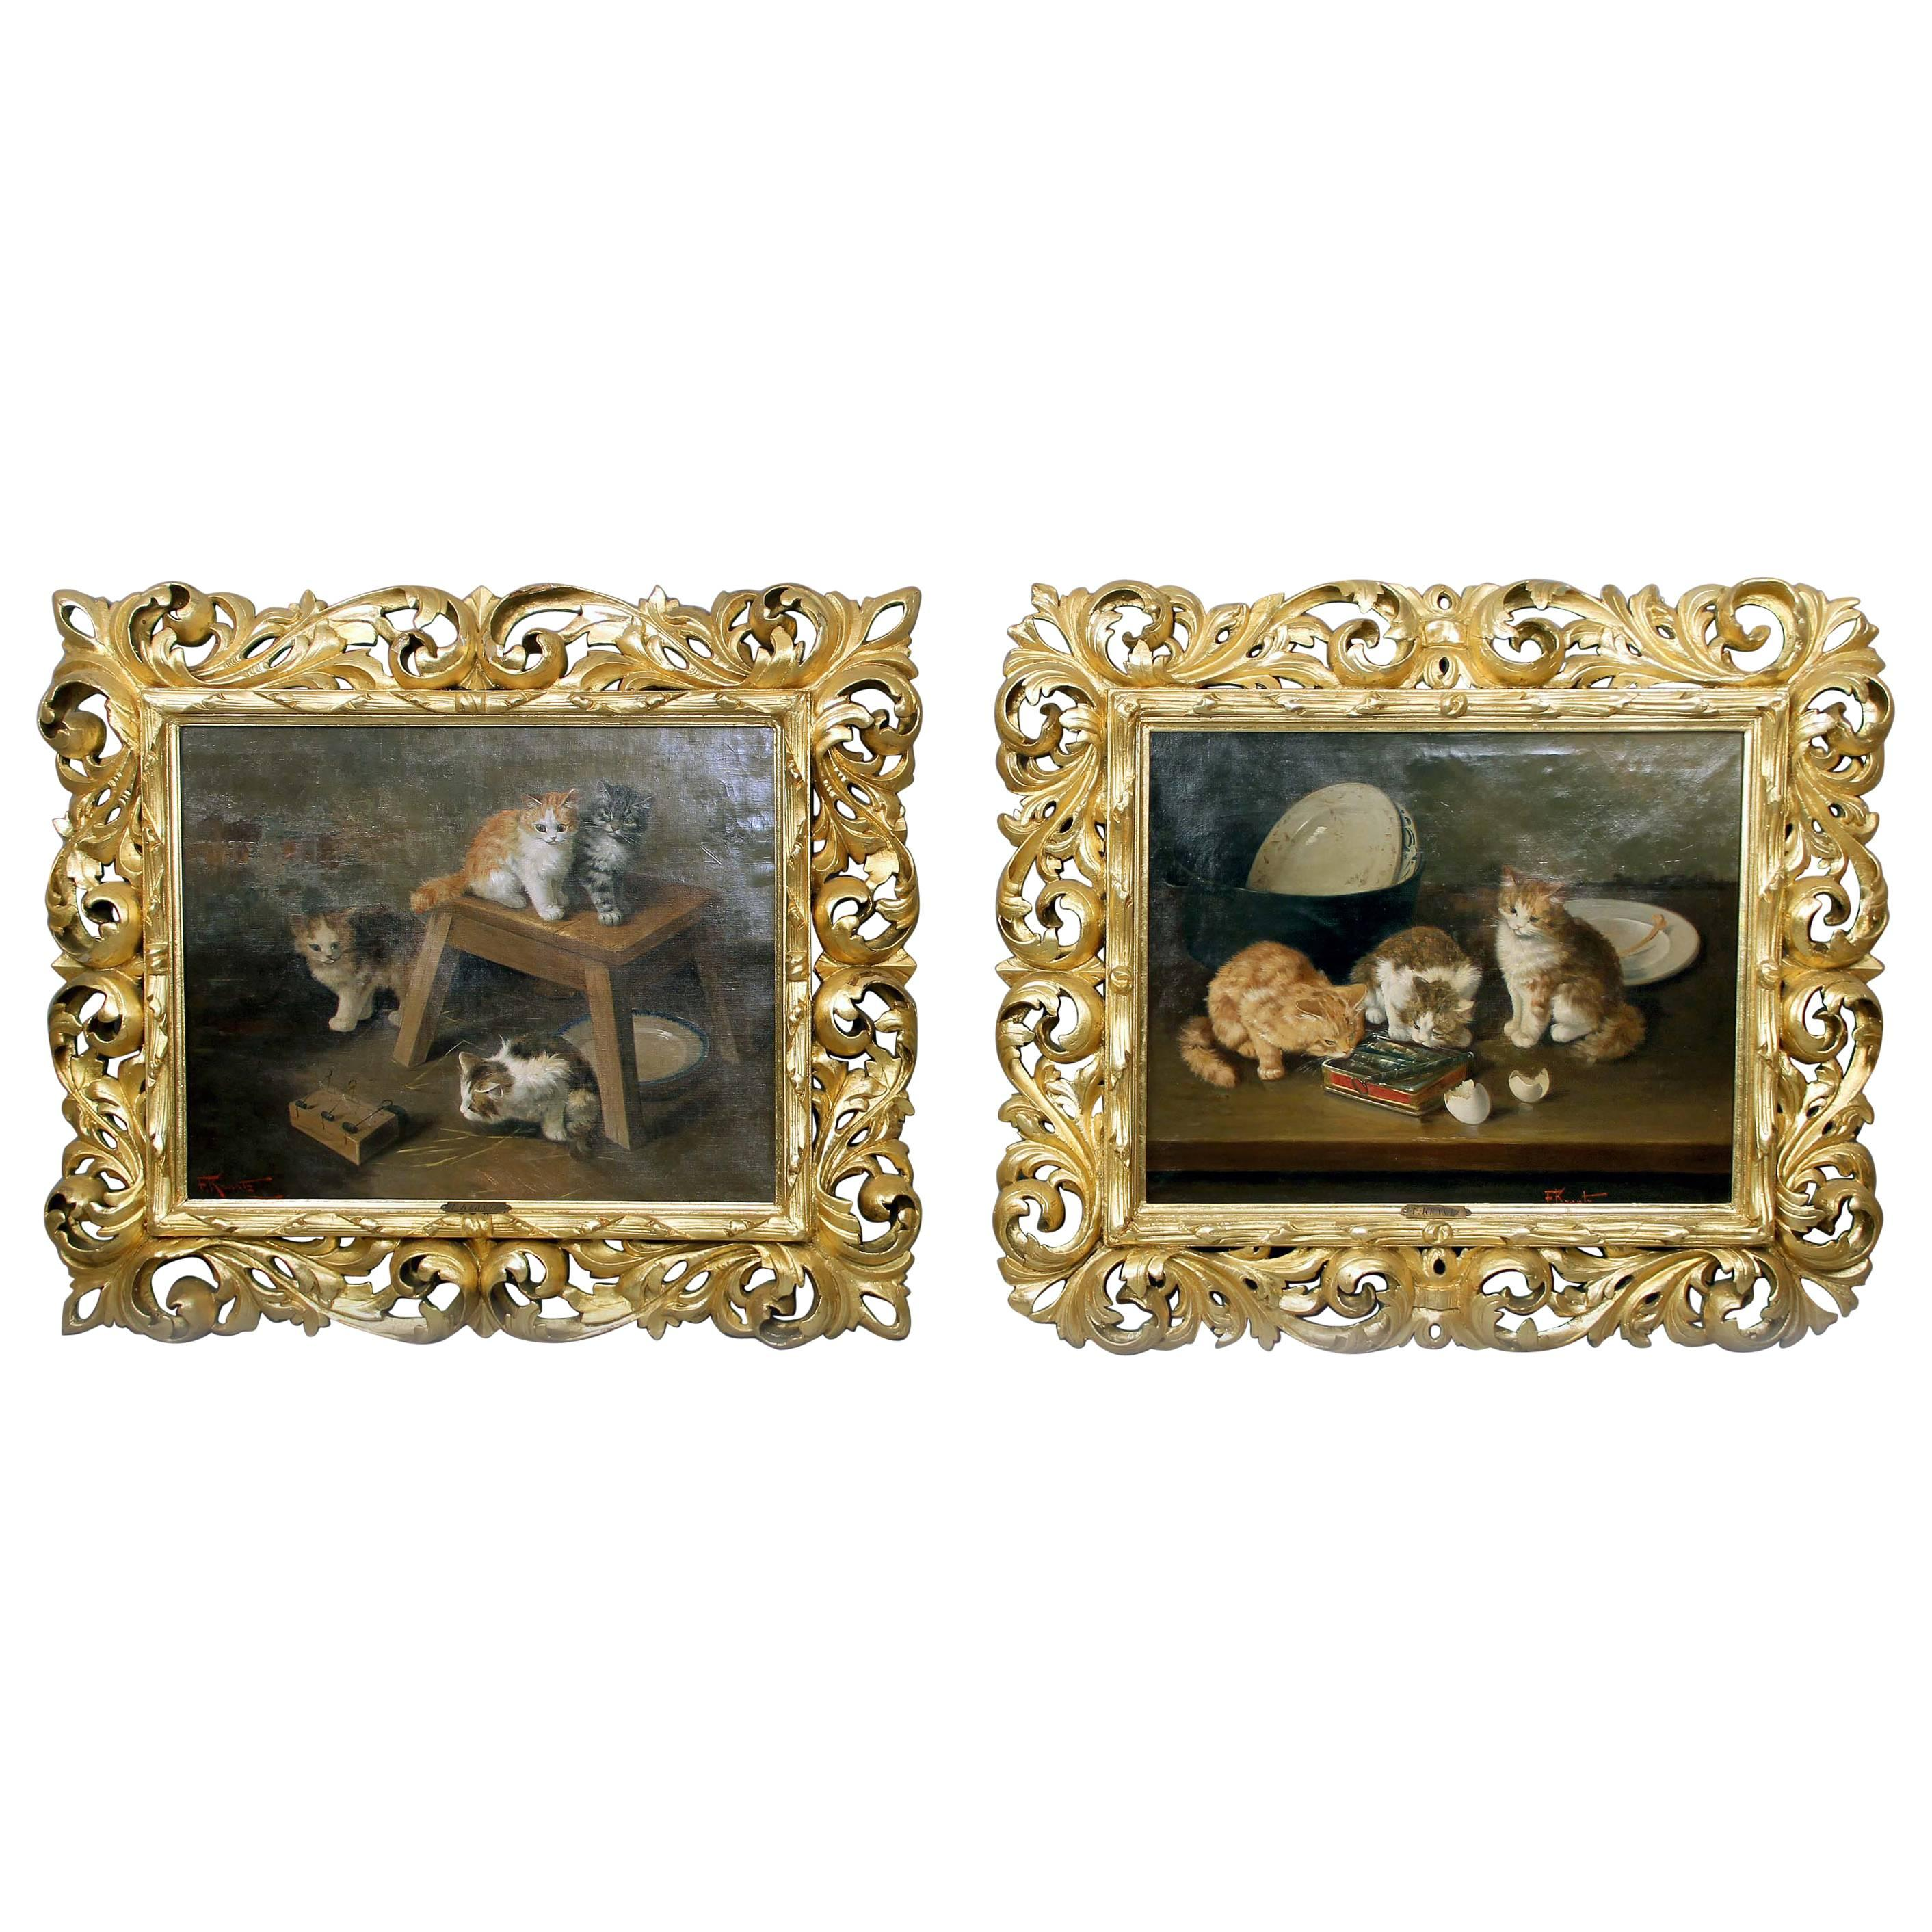 Beautiful Pair of Late 19th-Early 20th Century Kitten Paintings by F. Krantz